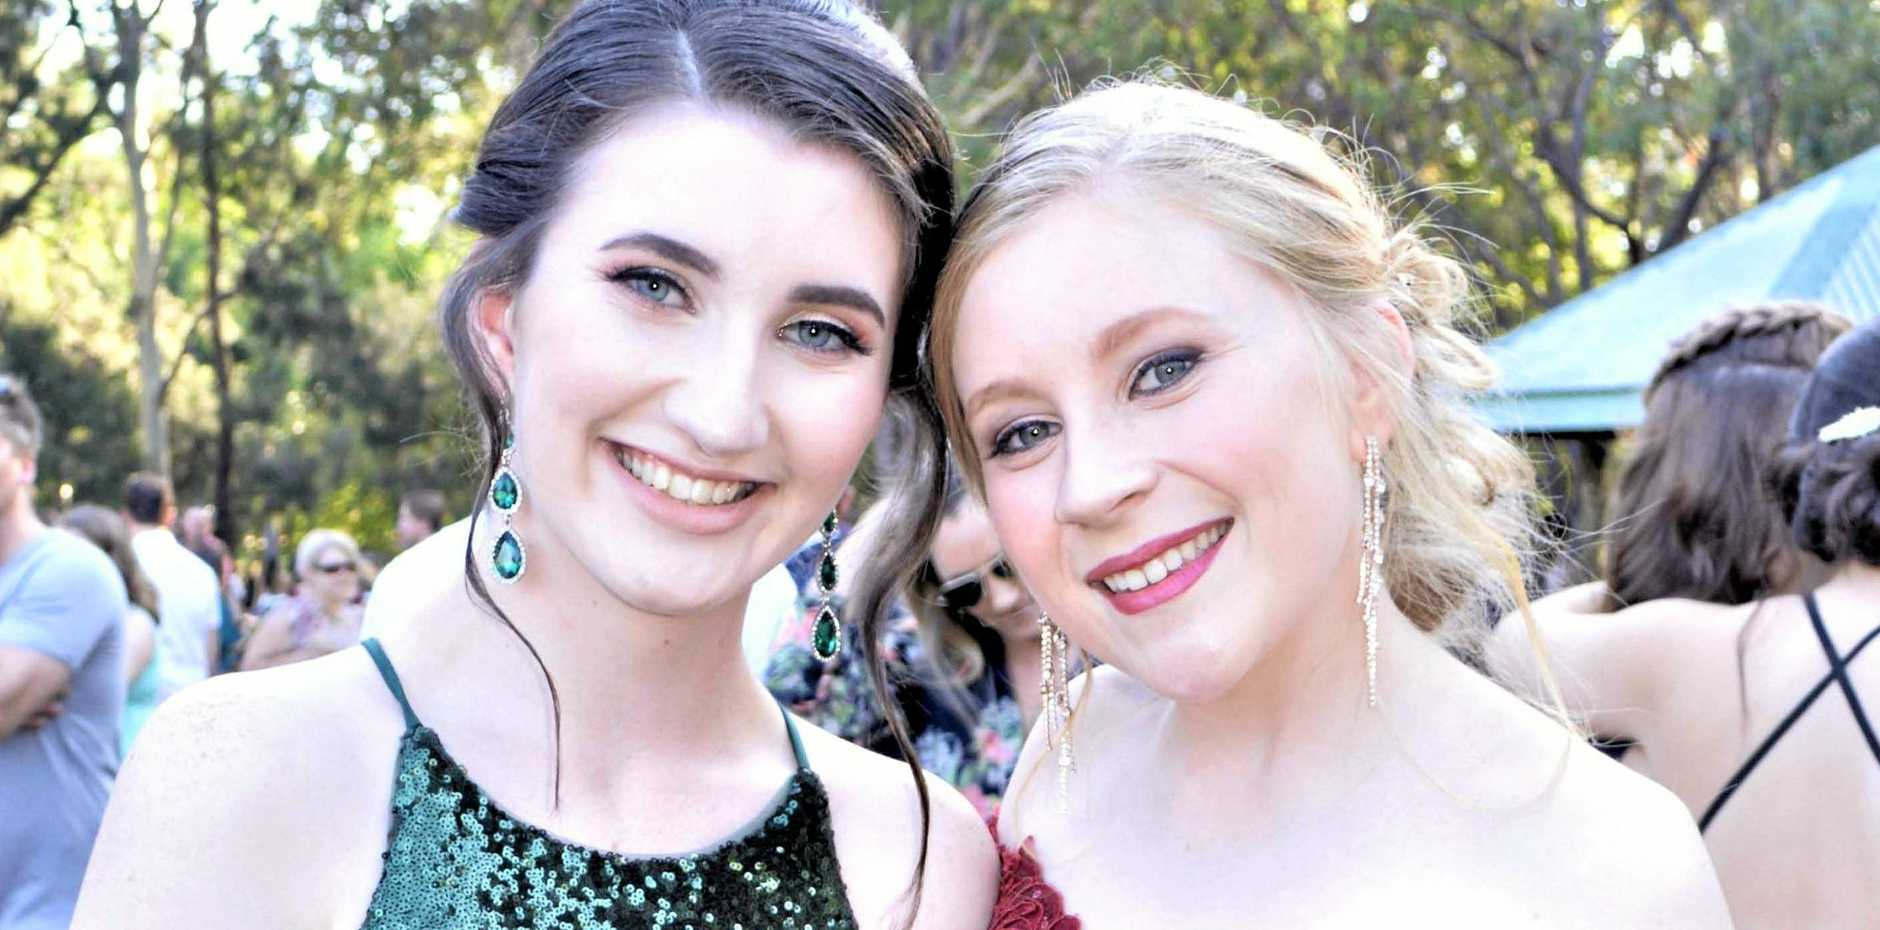 PARTNERS IN CRIME: Former Kepnock State High School students Renee Nielsen and Hollie Cooper will take their mutual interest in true crime documentaries to the next level when they start university together.